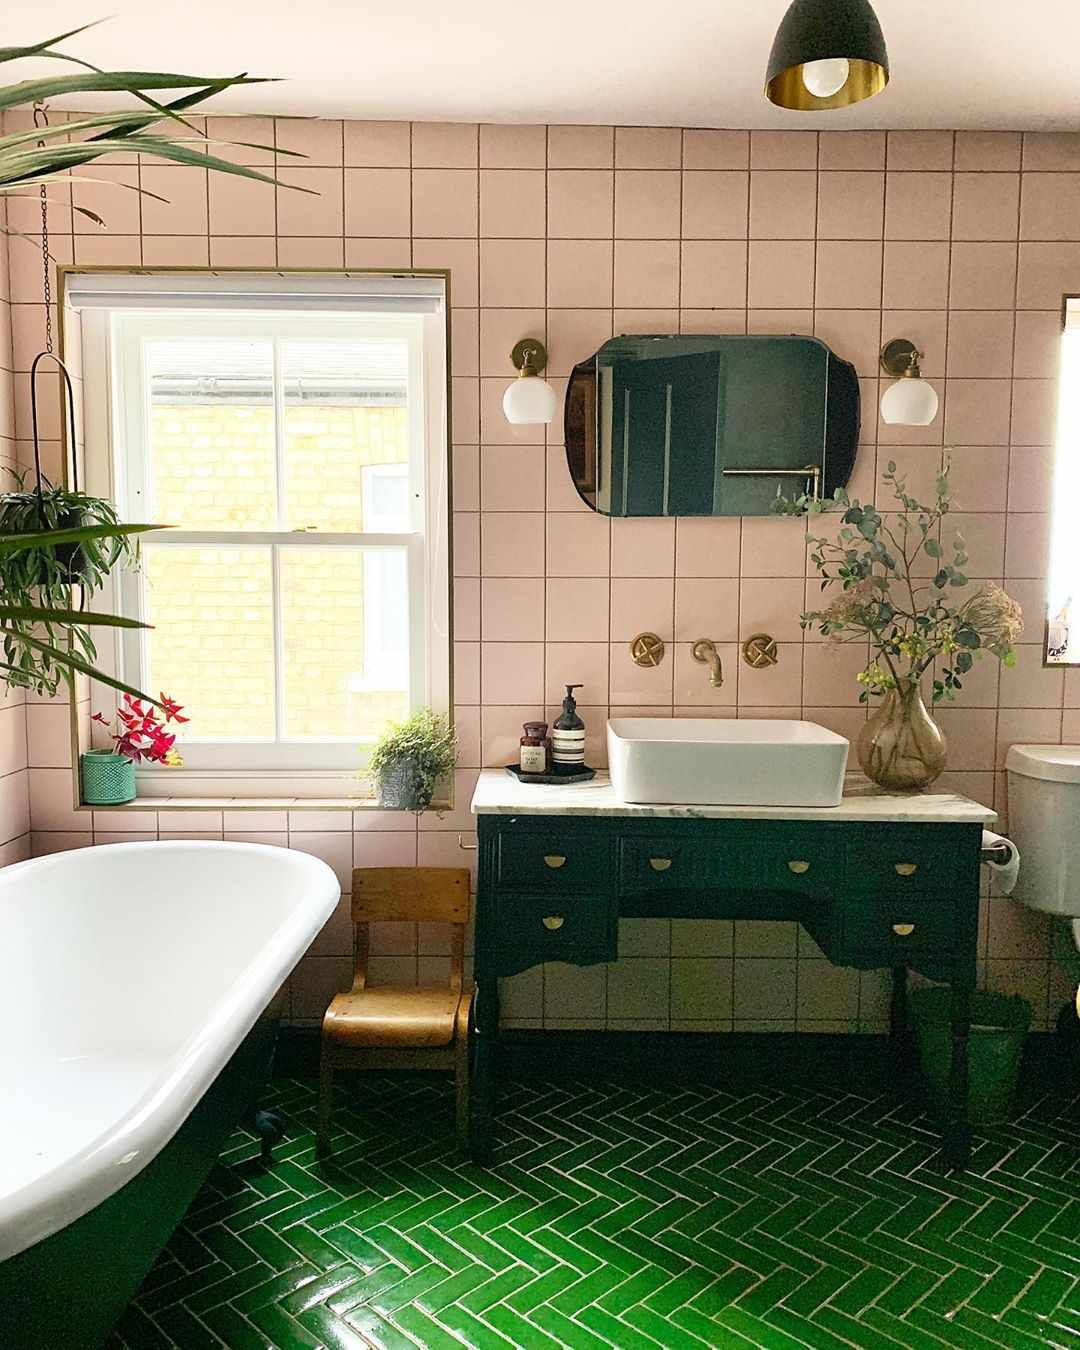 14 Ideas For Gorgeous Green Bathrooms In 2020 Green Bathroom Lime Green Bathrooms Green Tile Bathroom